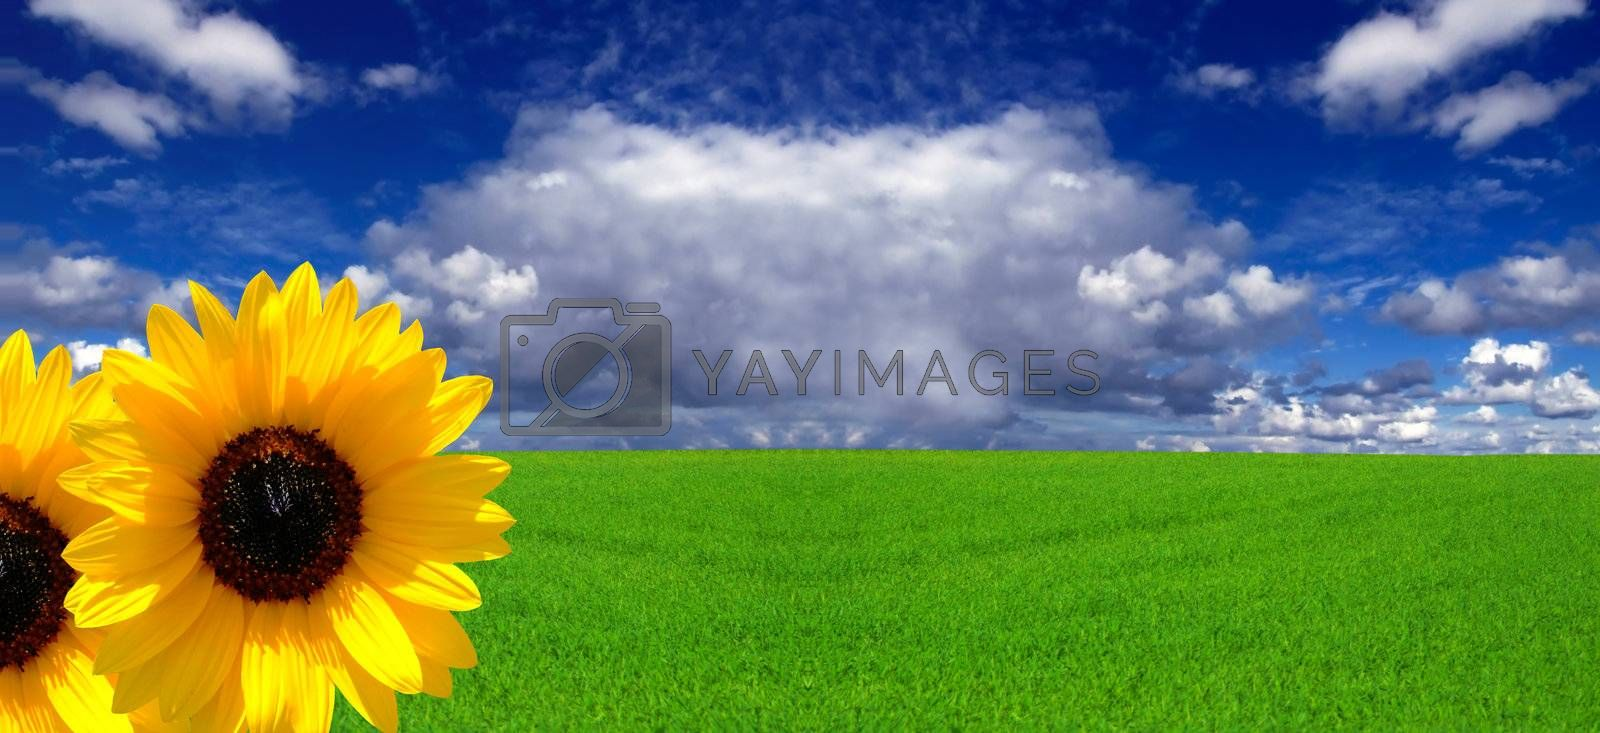 Conceptual image showing amazing blue skies over green meadows